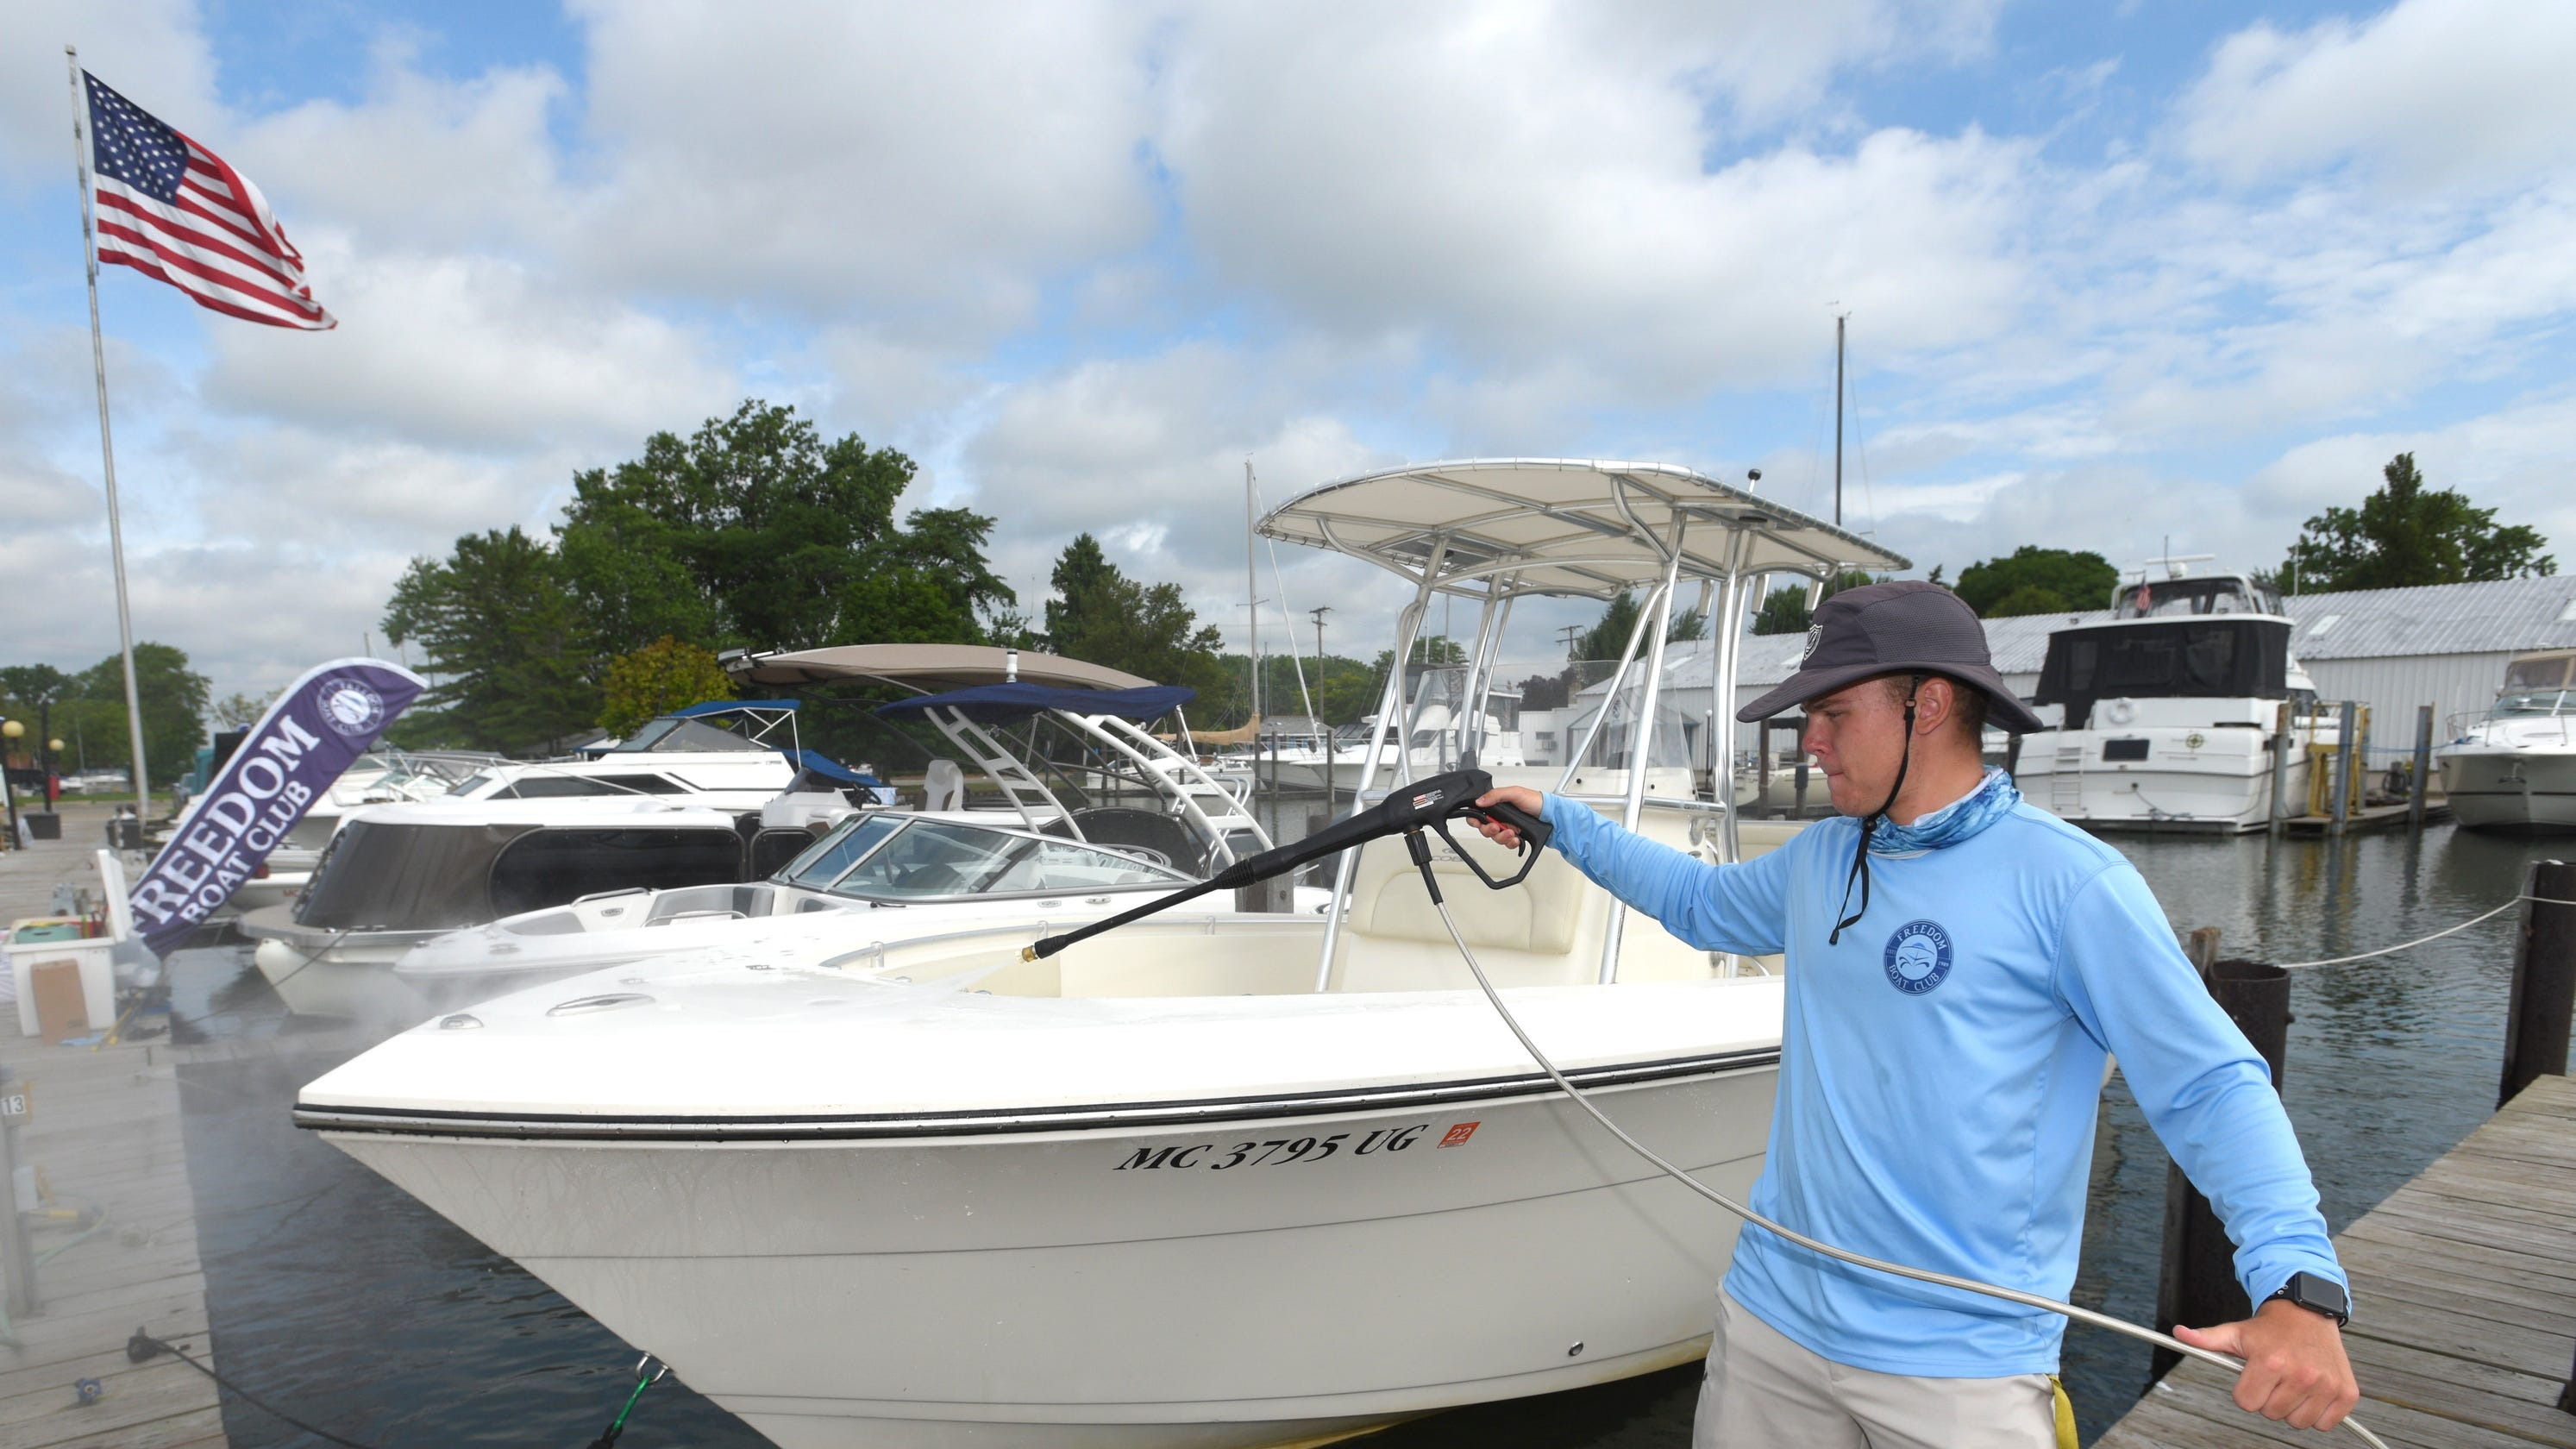 Michigan boating goes 'from doom to boom'